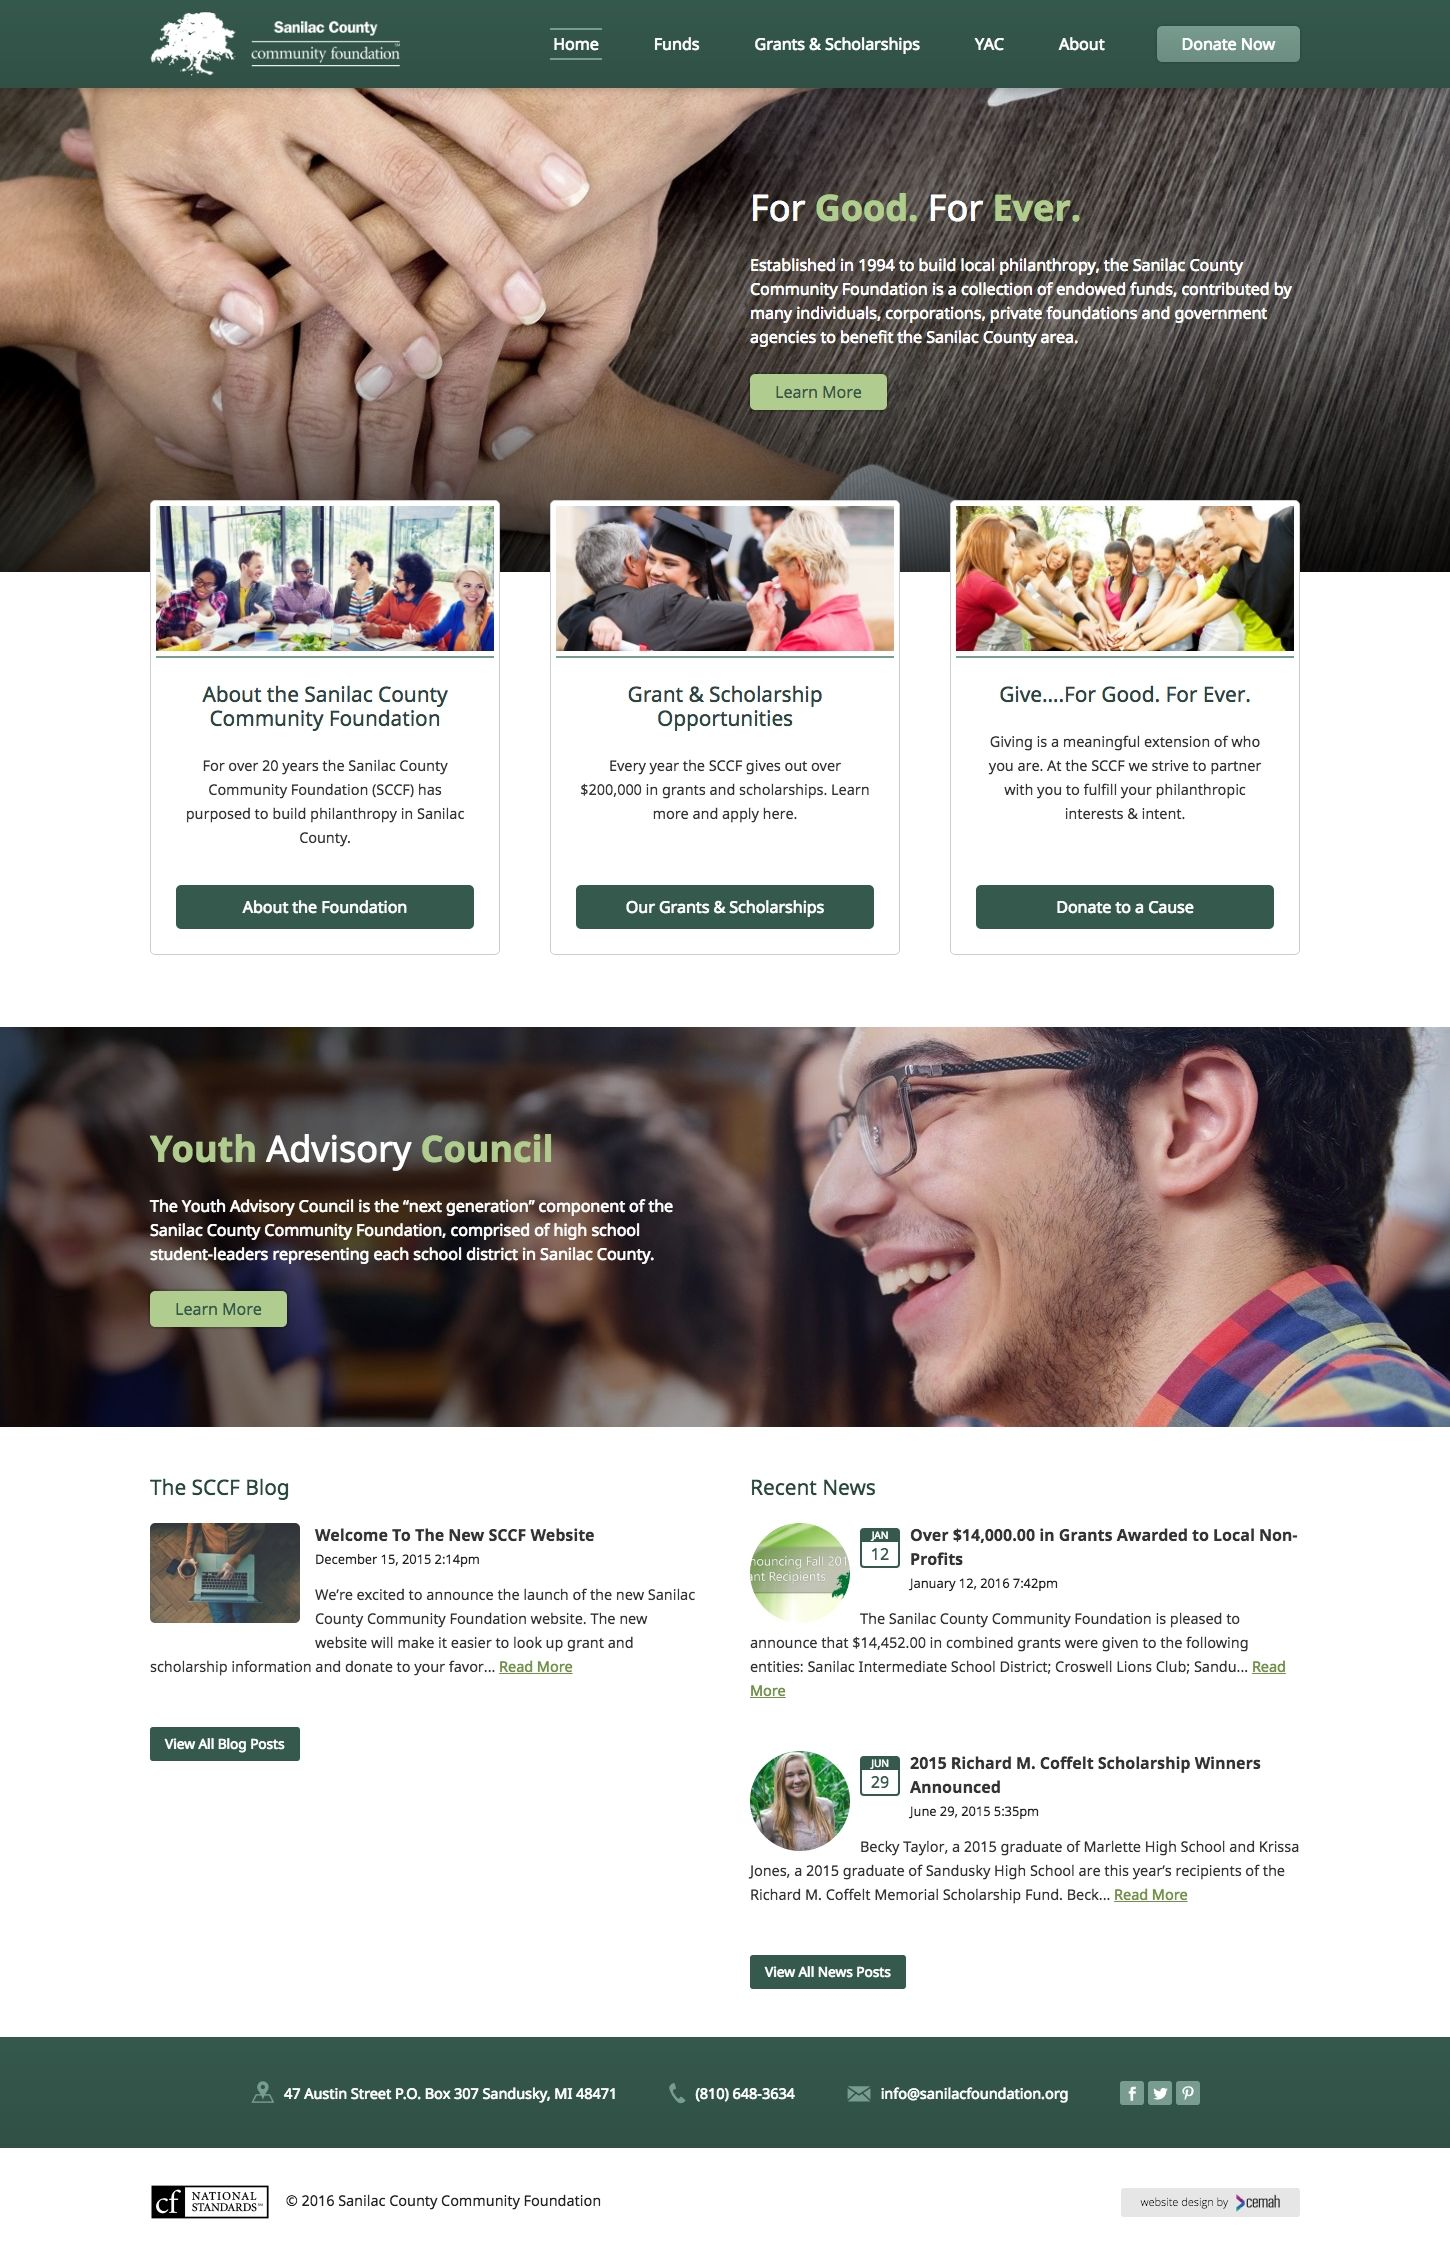 Community foundation website design layout featuring the homepage for an county foundation